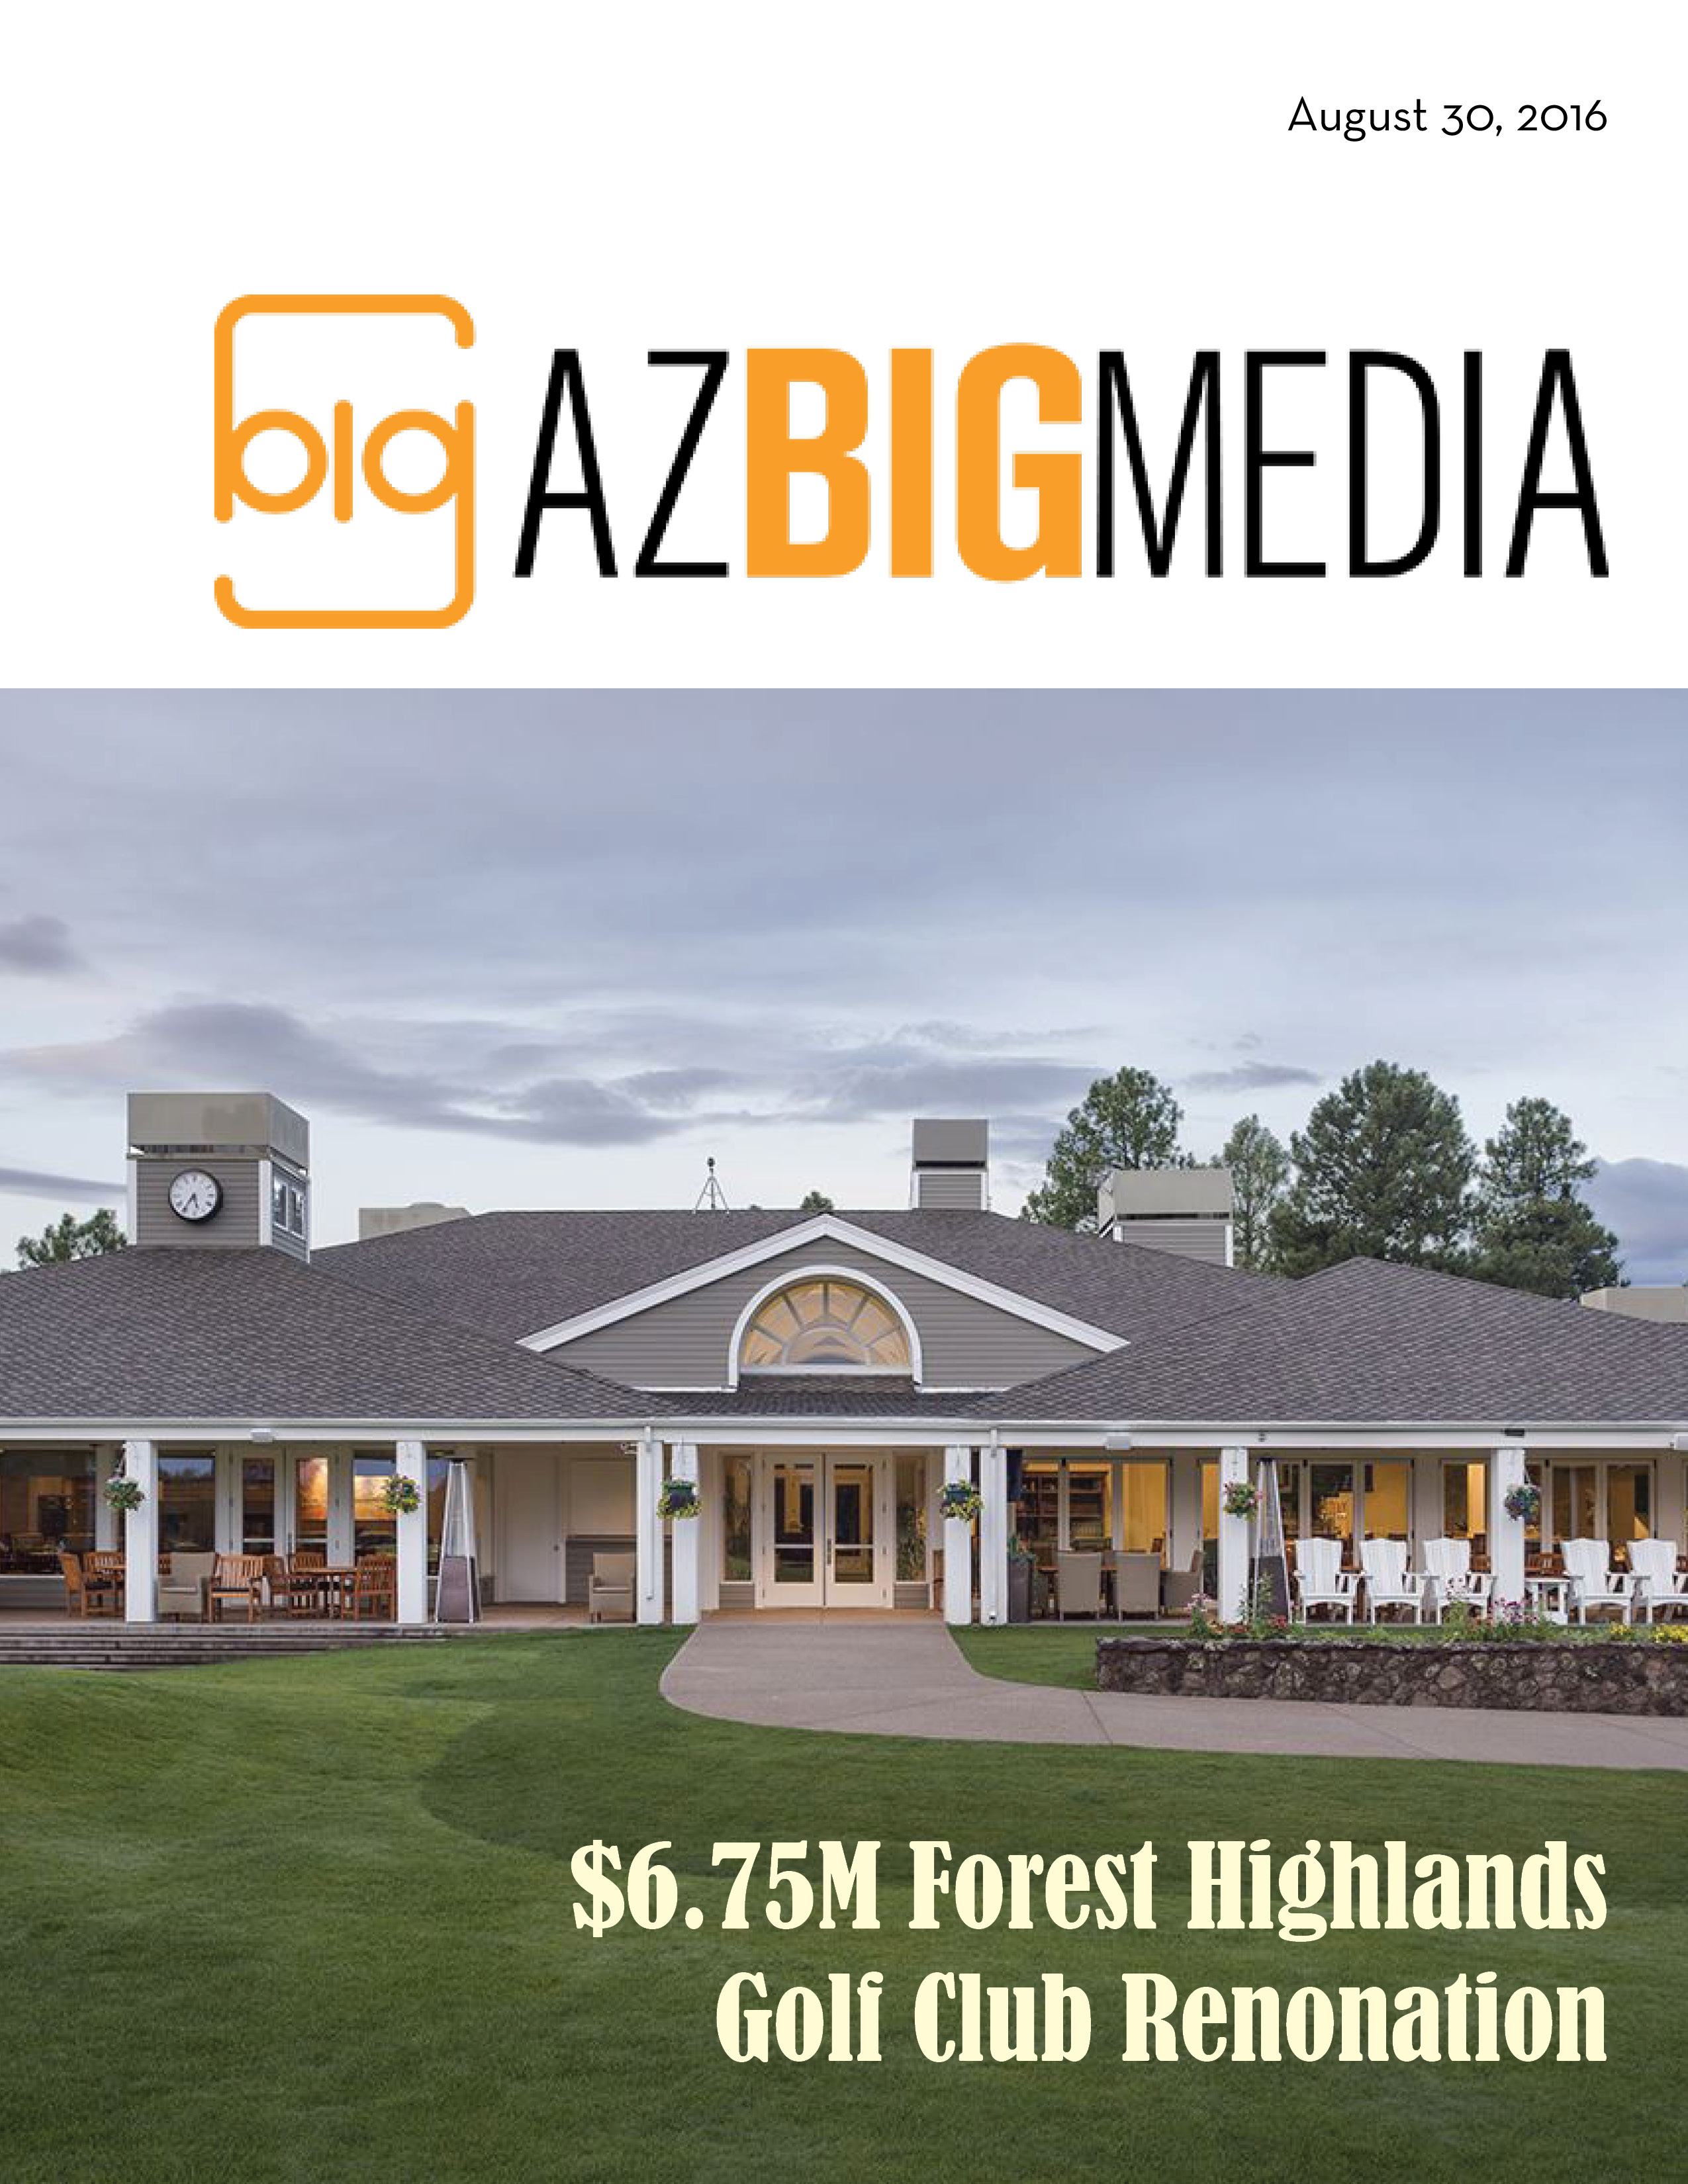 Forest Highlands Golf Clubhouse Renovation